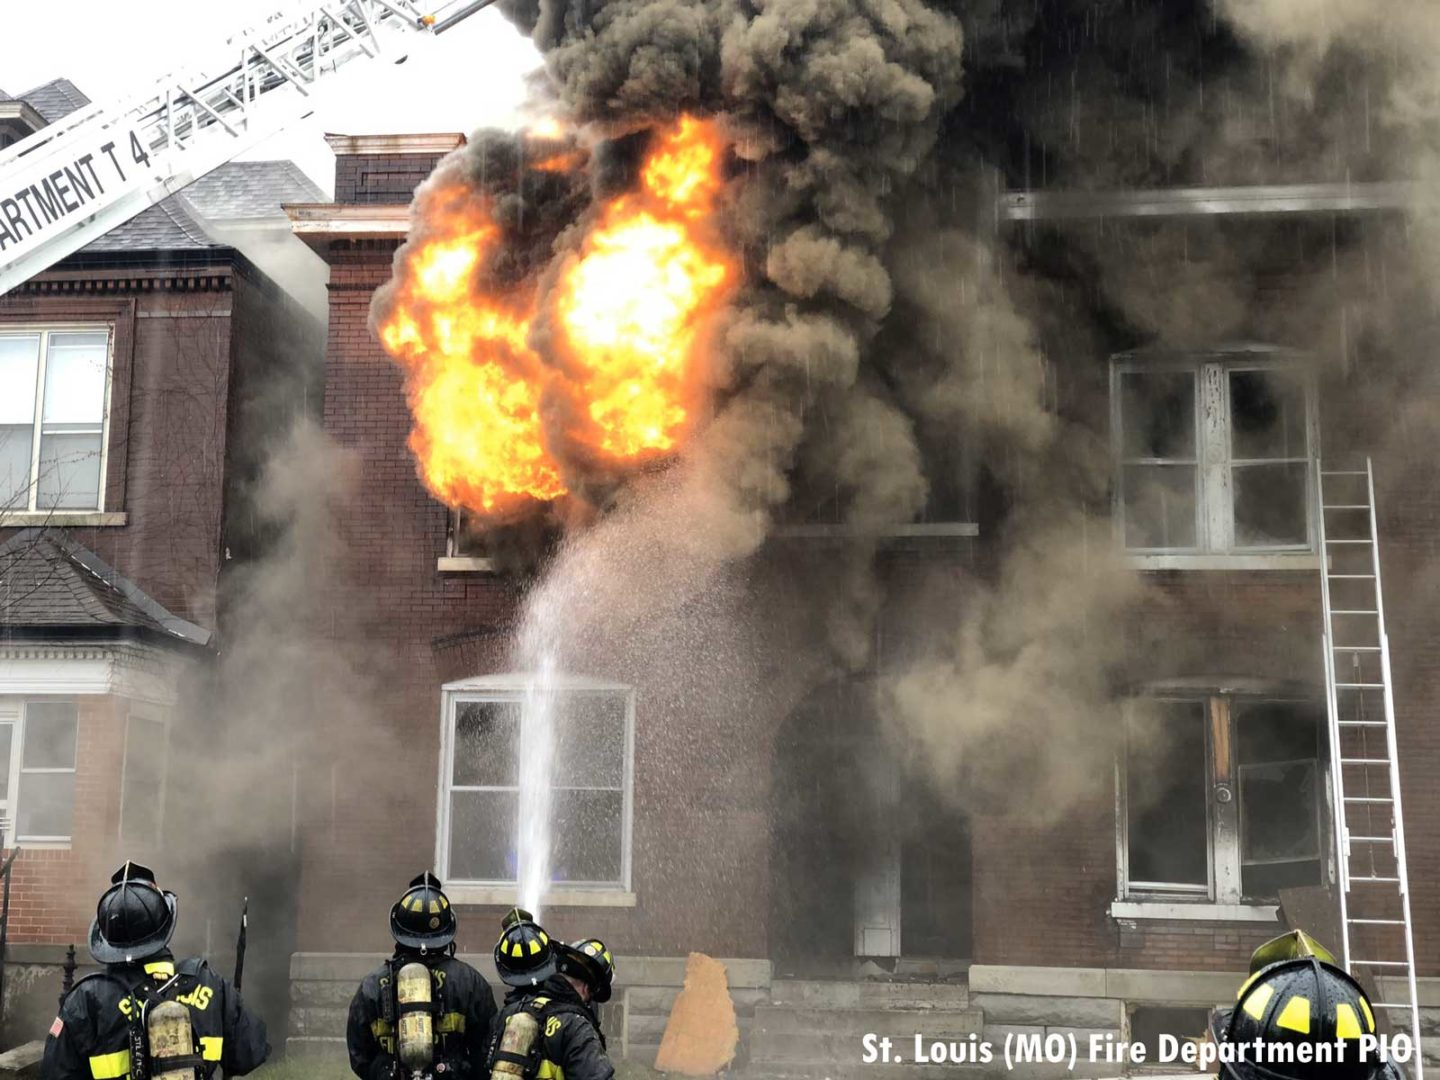 Fire erupts from the building even as firefighters administer water